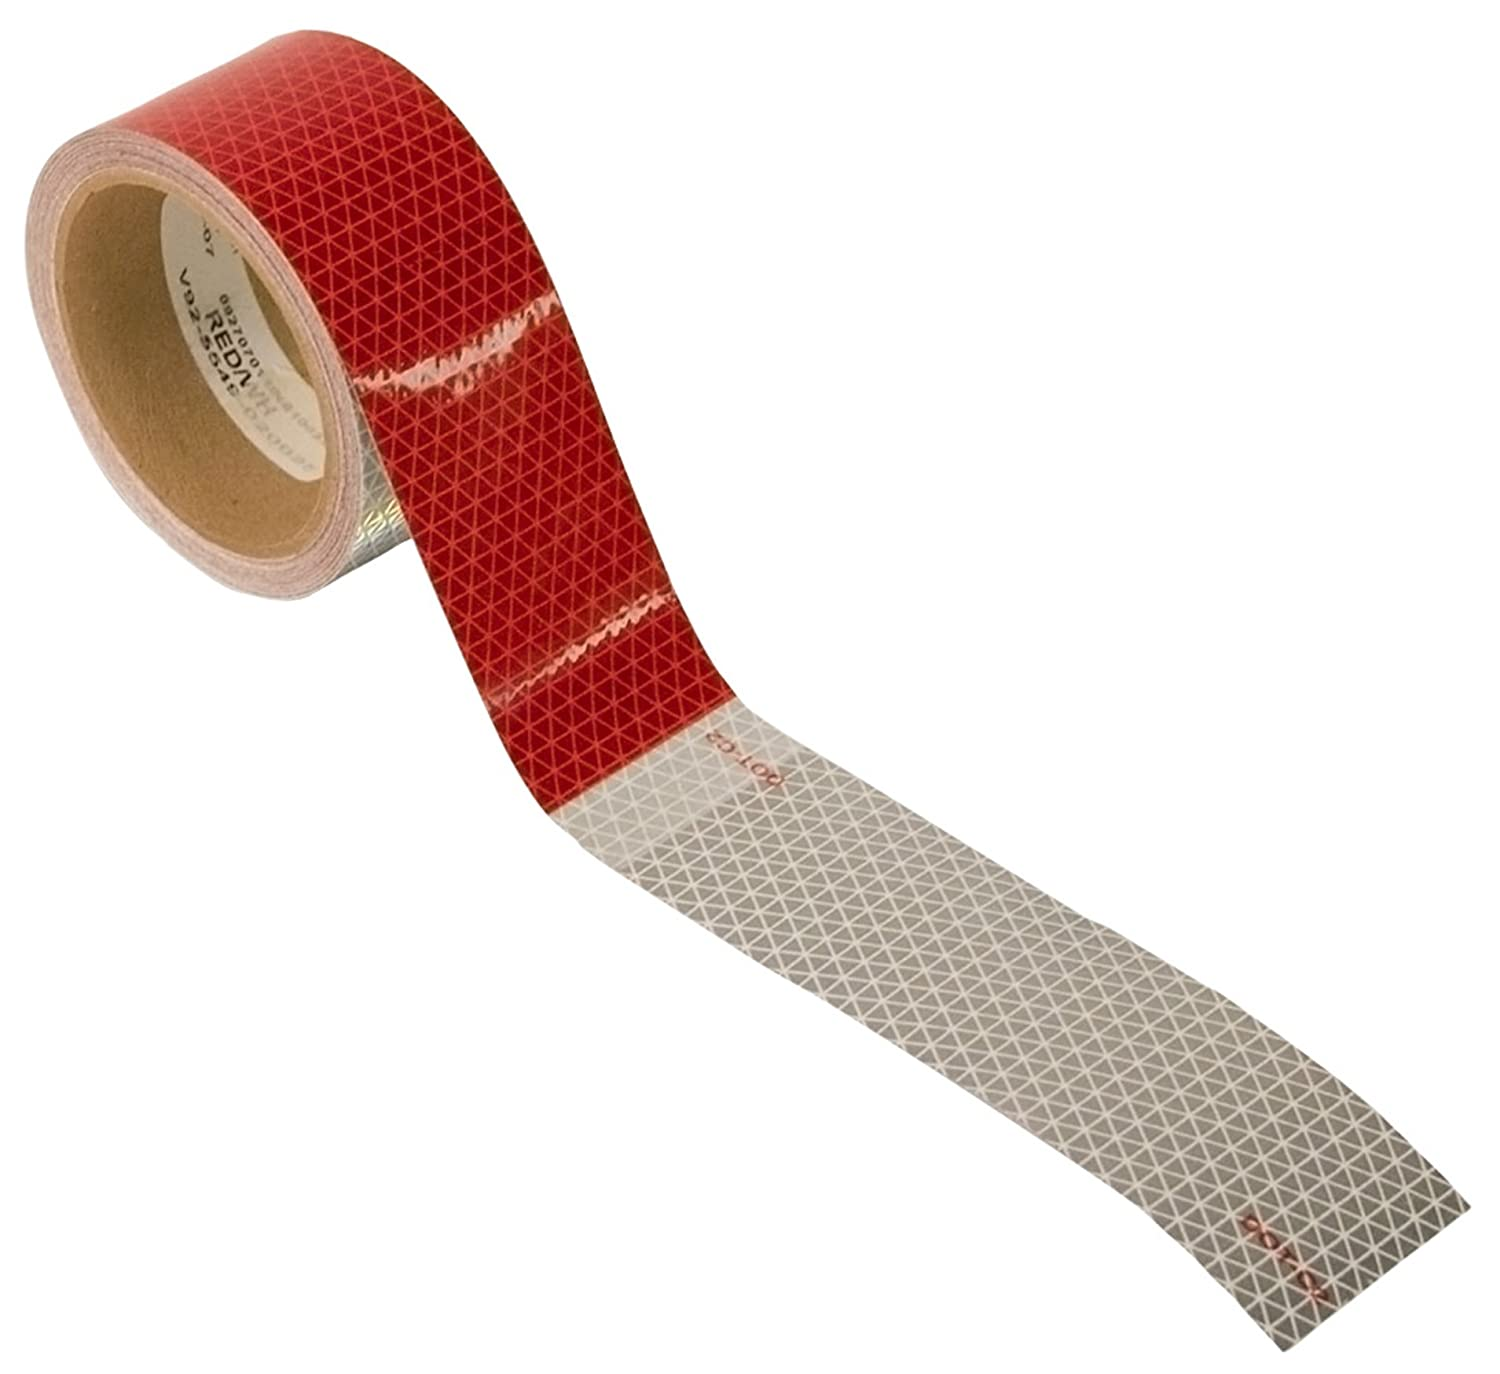 Pack of 1-Roll Blazer International Trailer /& Towing Accessories Blazer C285RW Red//White Conspicuity Tape 2 X 18-Inch 30-Foot Roll